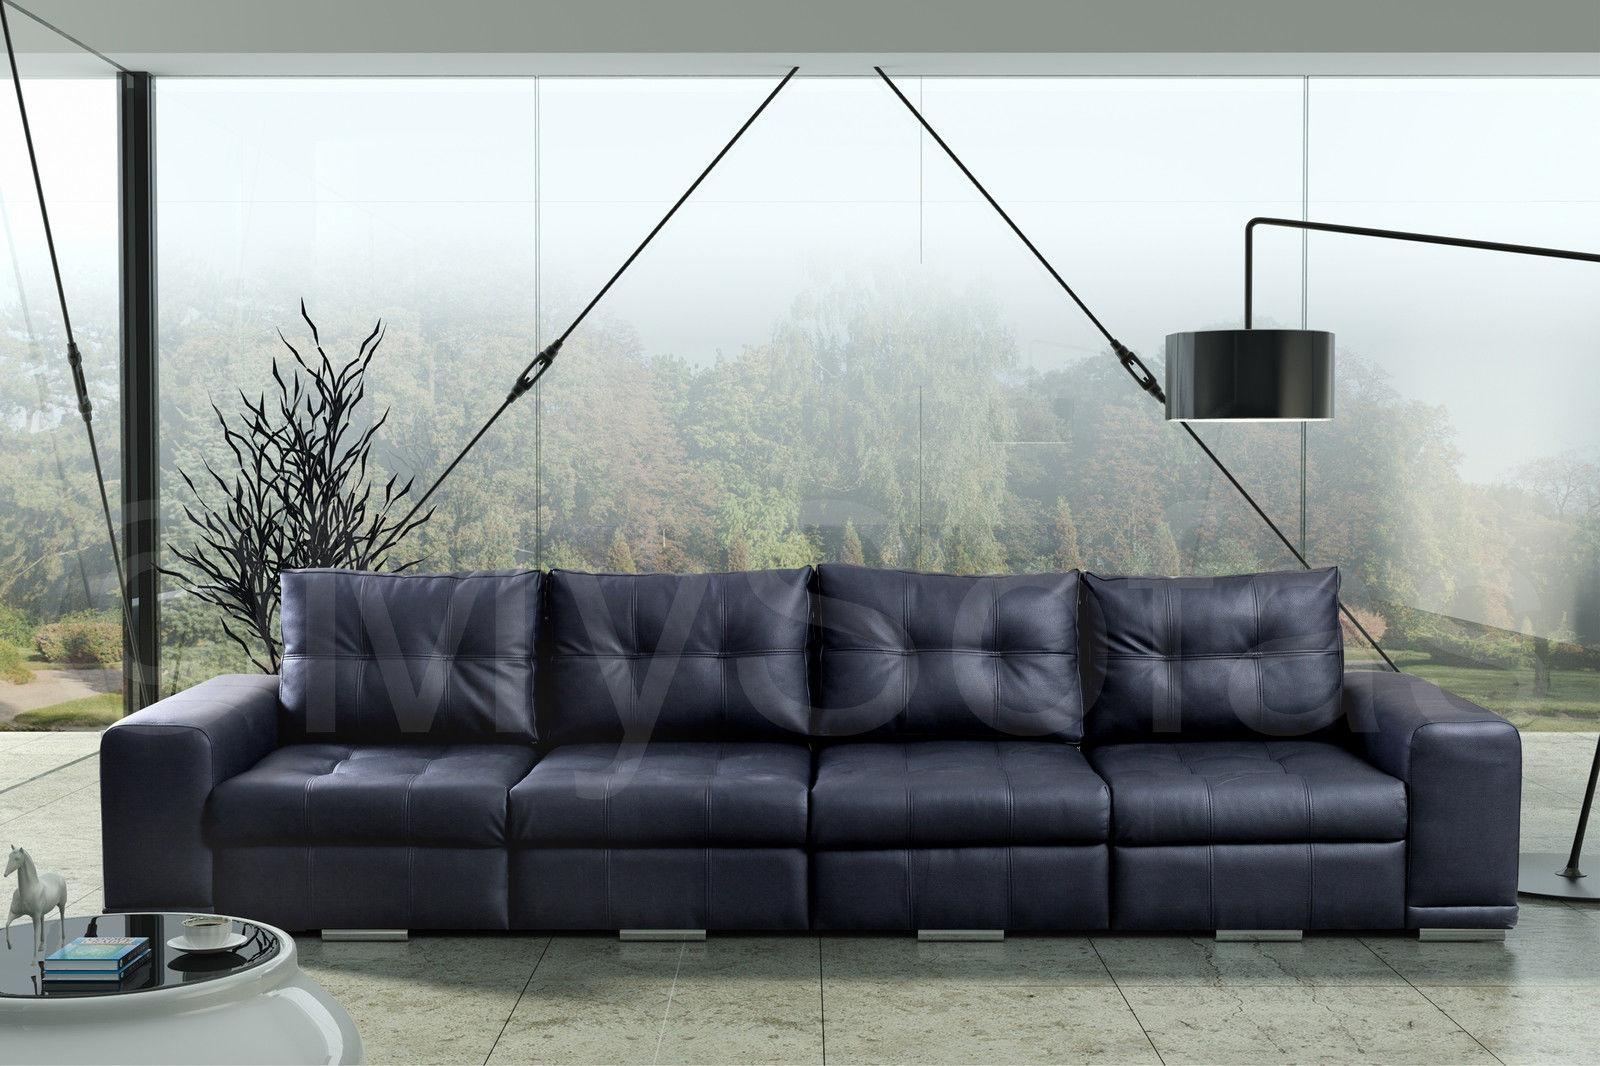 2 Seater Sofa Archives – Page 62 Of 69 – Sofas In Fashion Inside Large 4 Seater Sofas (View 8 of 20)